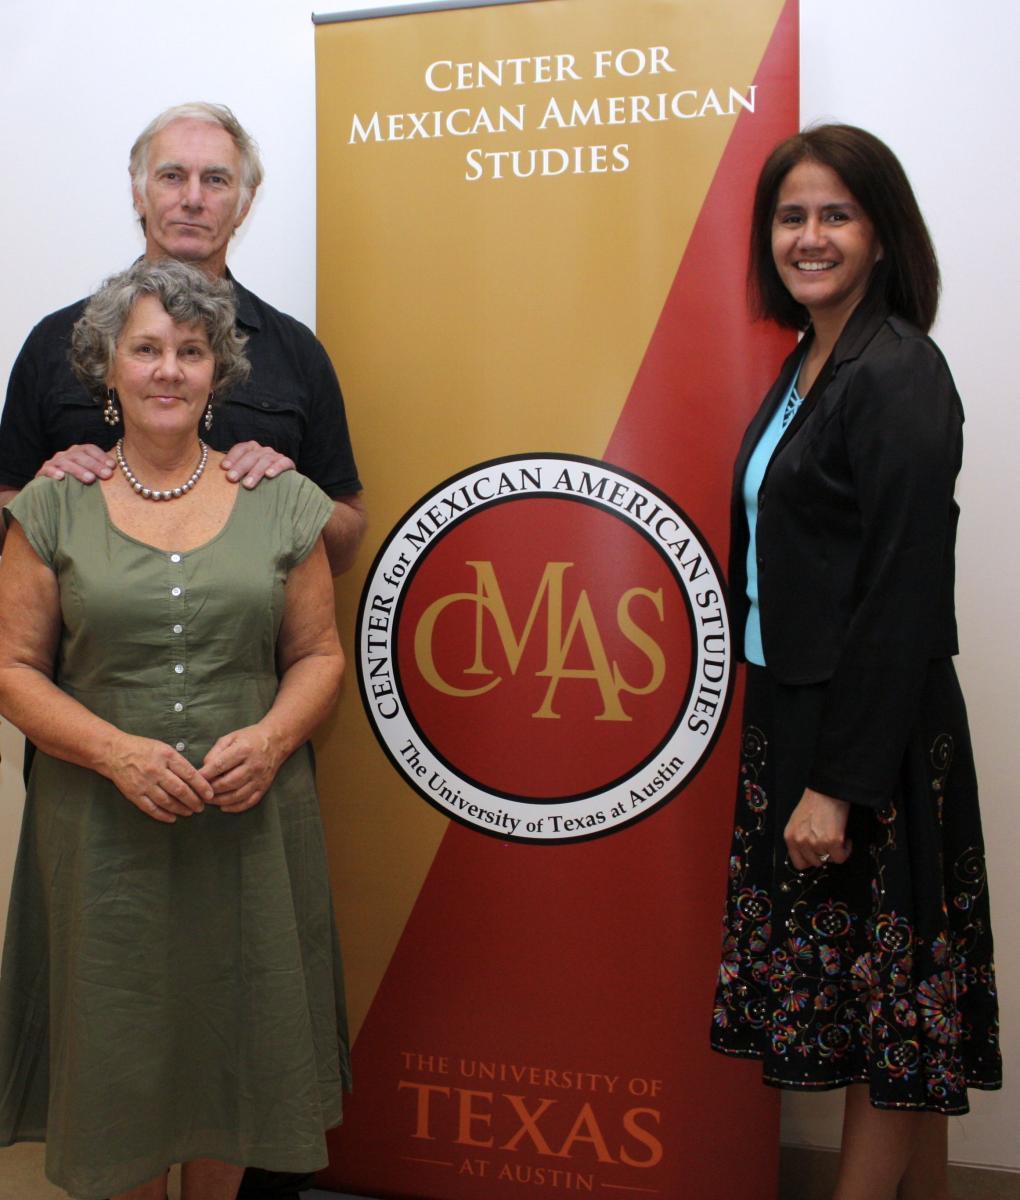 Domino Perez with John Sayles and Maggie Renzi at the Center for Mexican American Studies